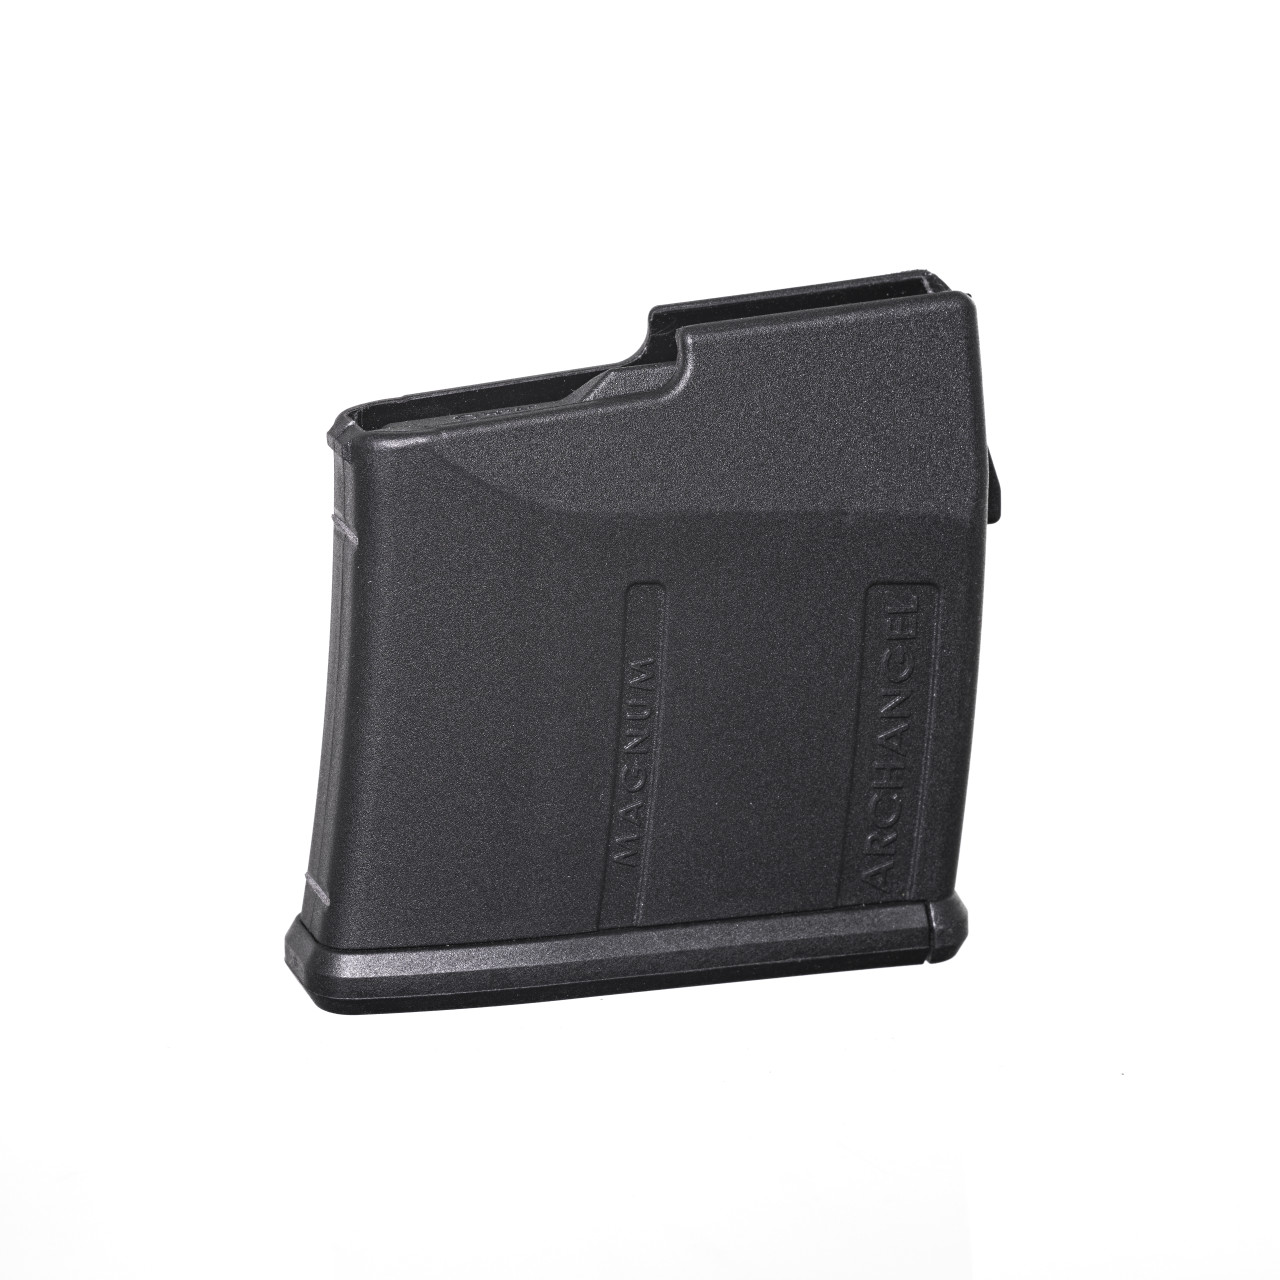 Archangel® Magnum Caliber (300 Win / 7MM Rem Magnum) TYPE B Magazine for AAT3 and AA98 Stocks (7) Rd with (5) Rd Limiter - Black Polymer